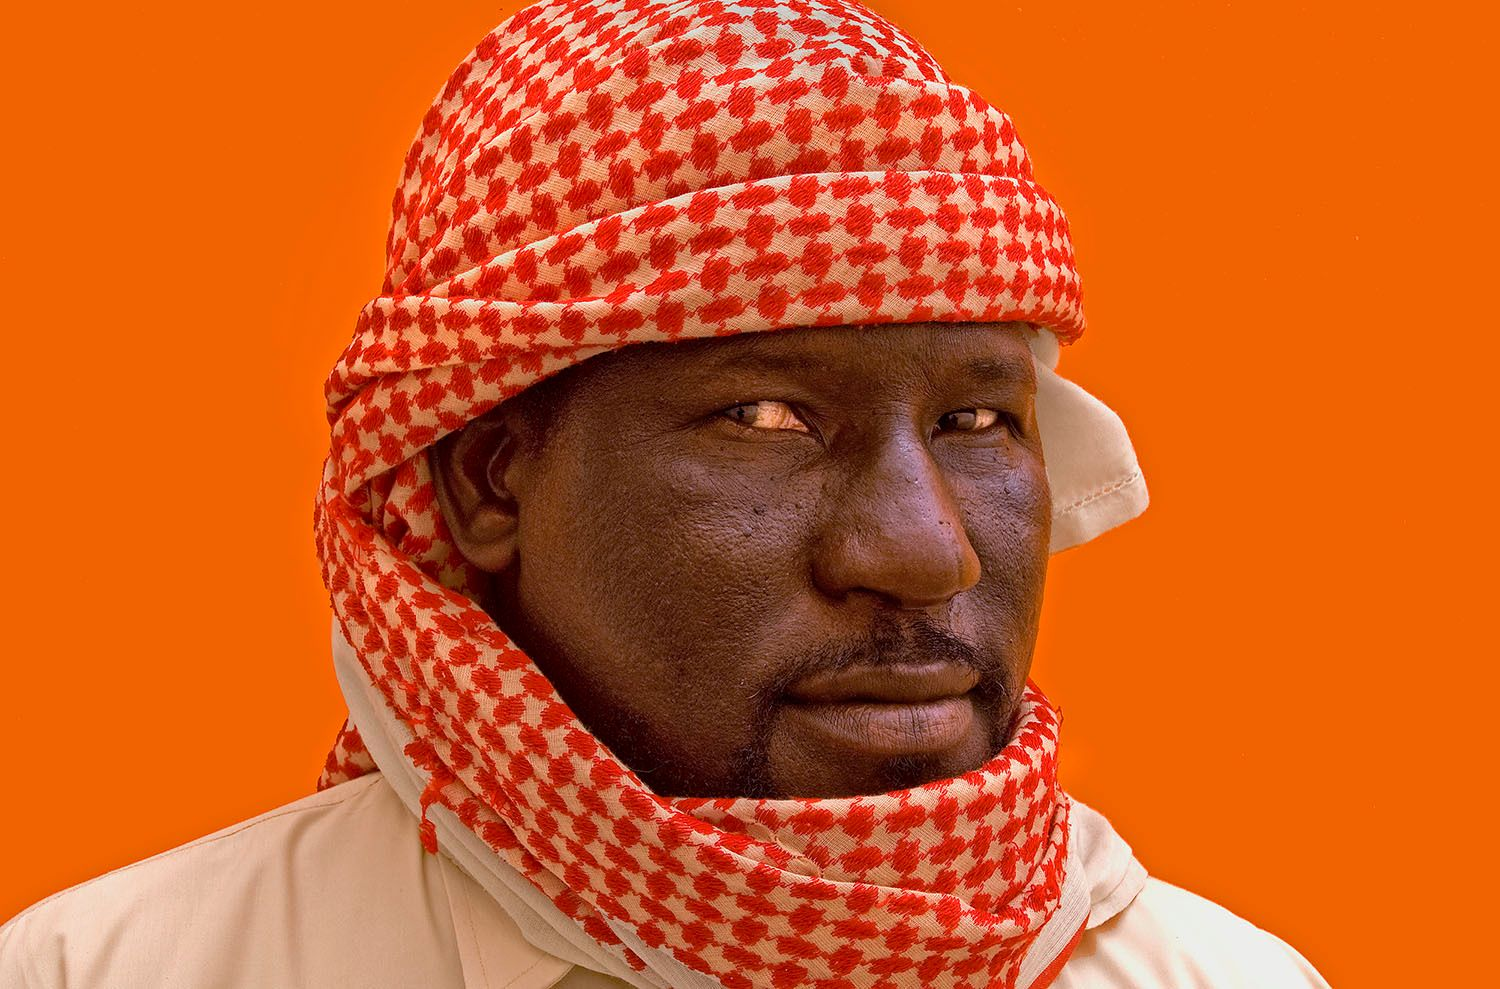 Portrait of Man in Libya